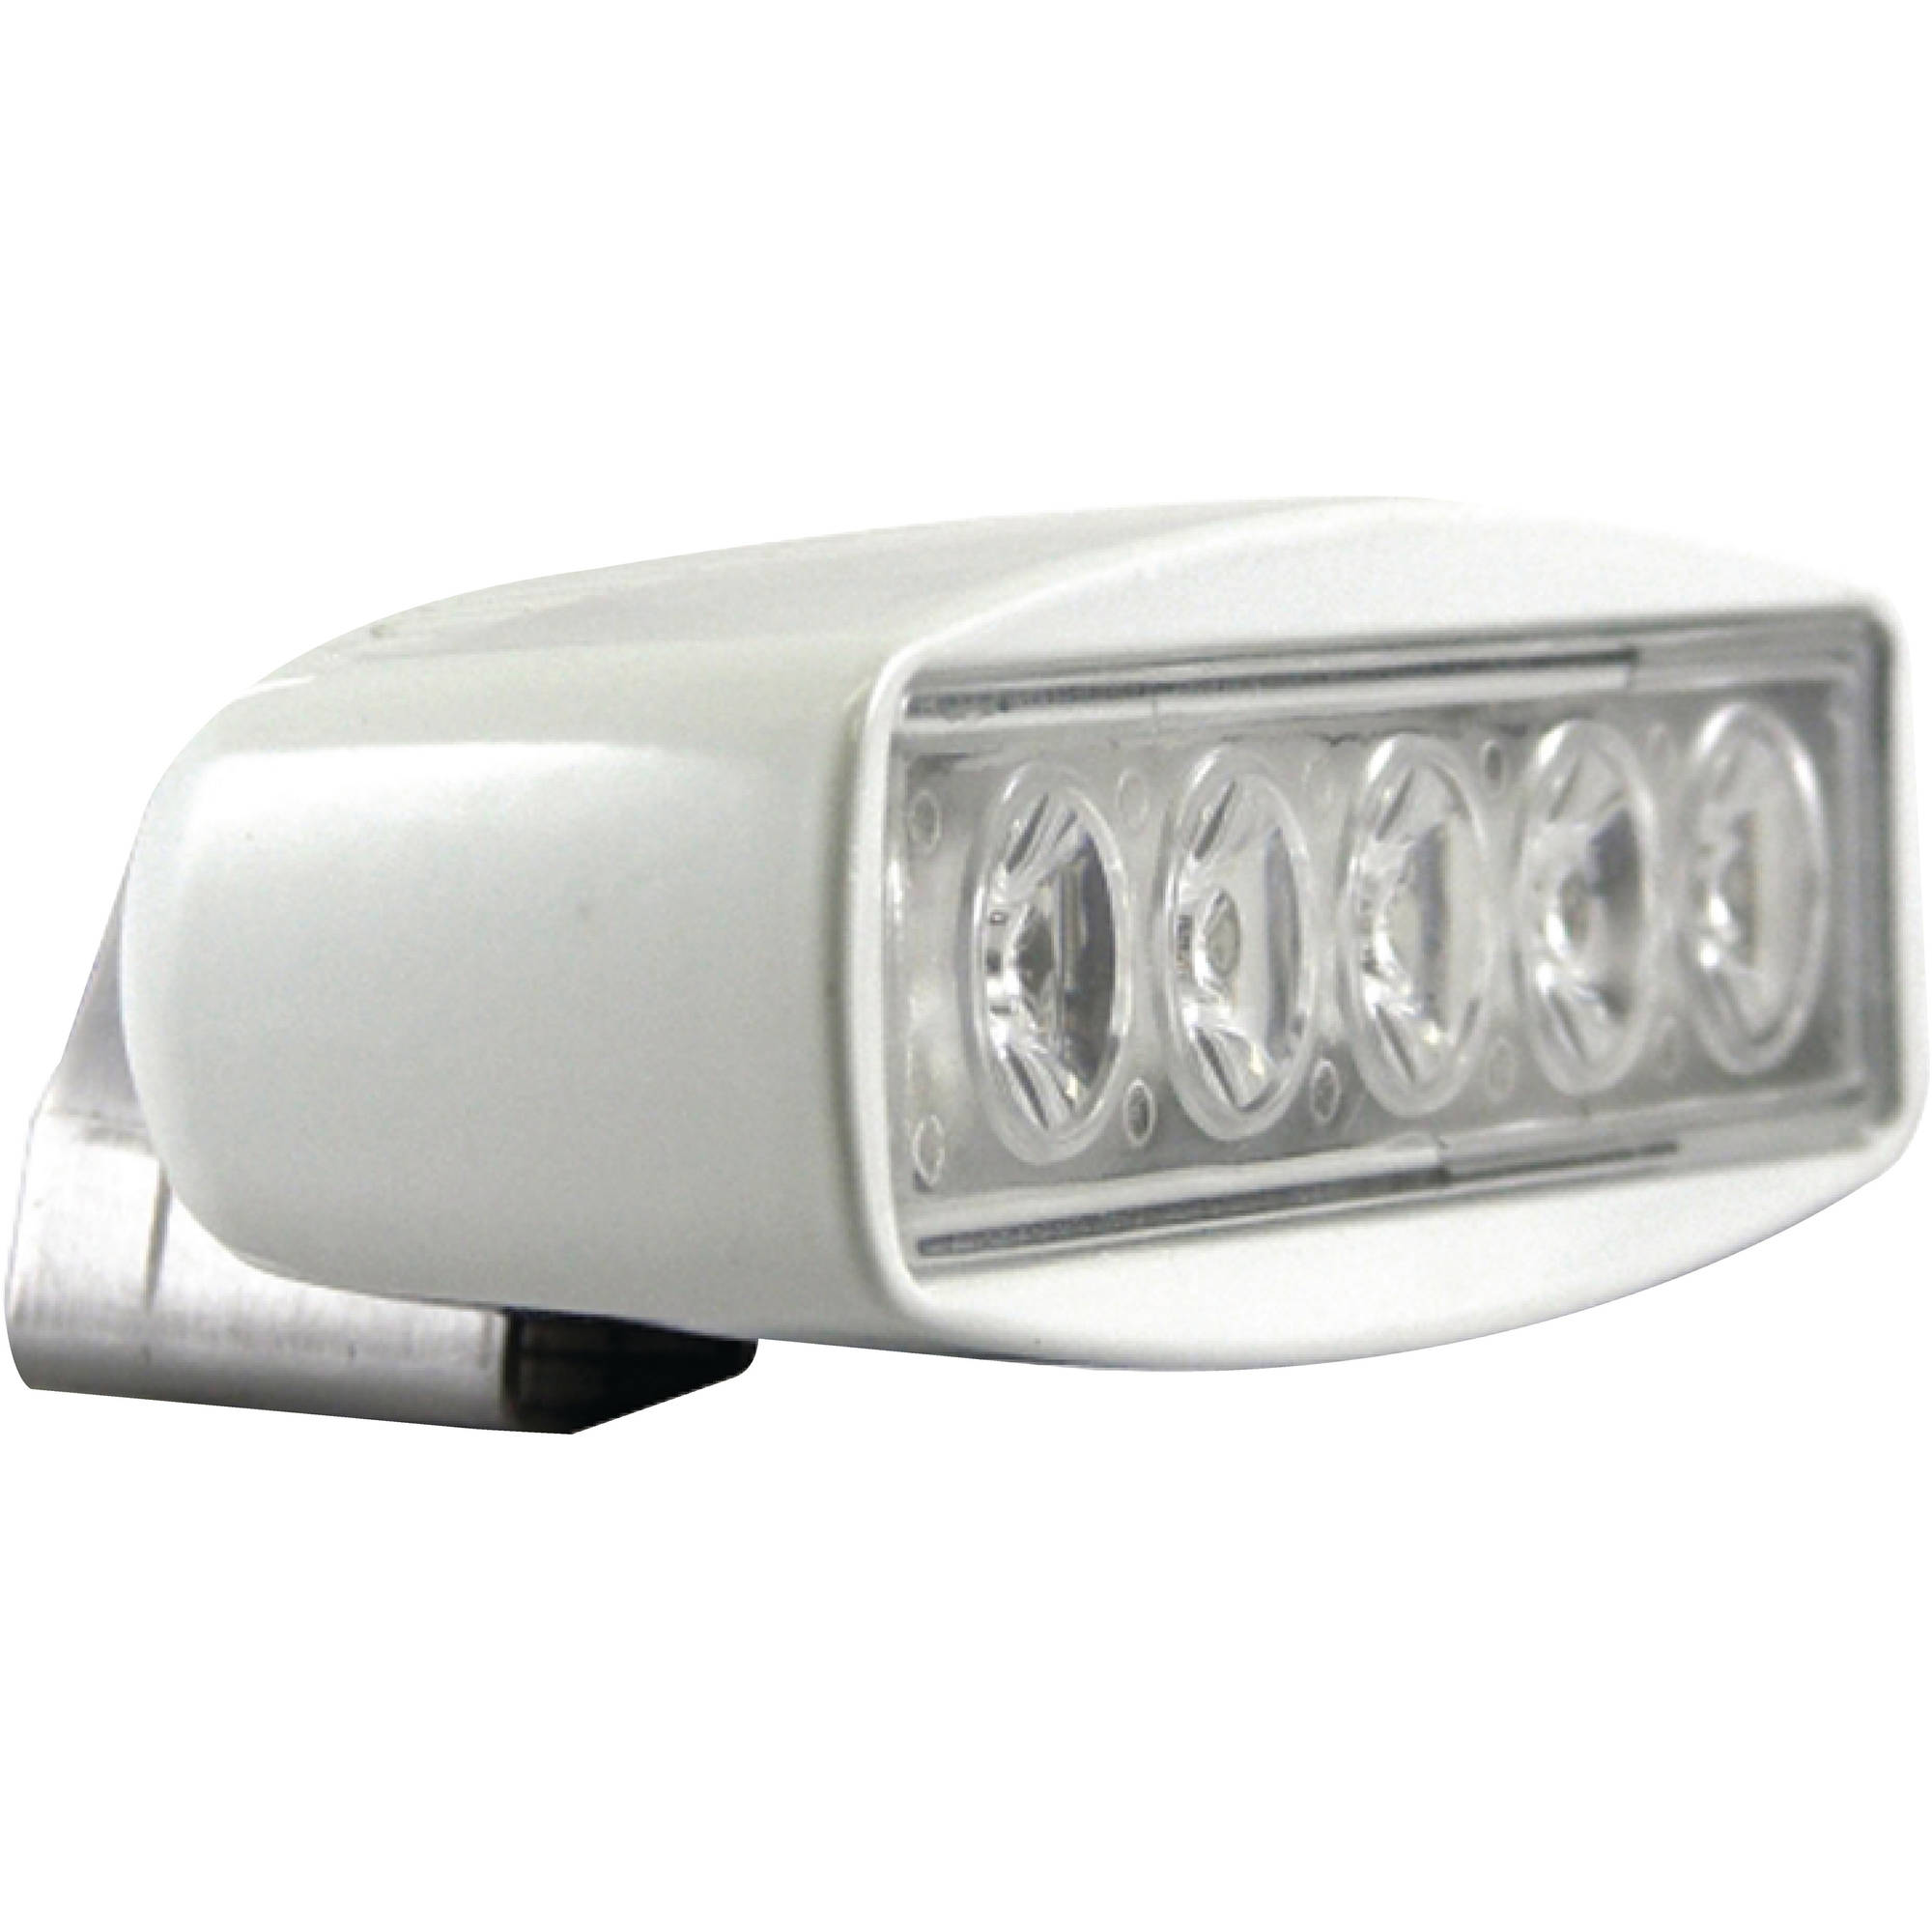 T-H Marine LED Super Spreader Light 5 LEDs, White by T-H Marine Supplies